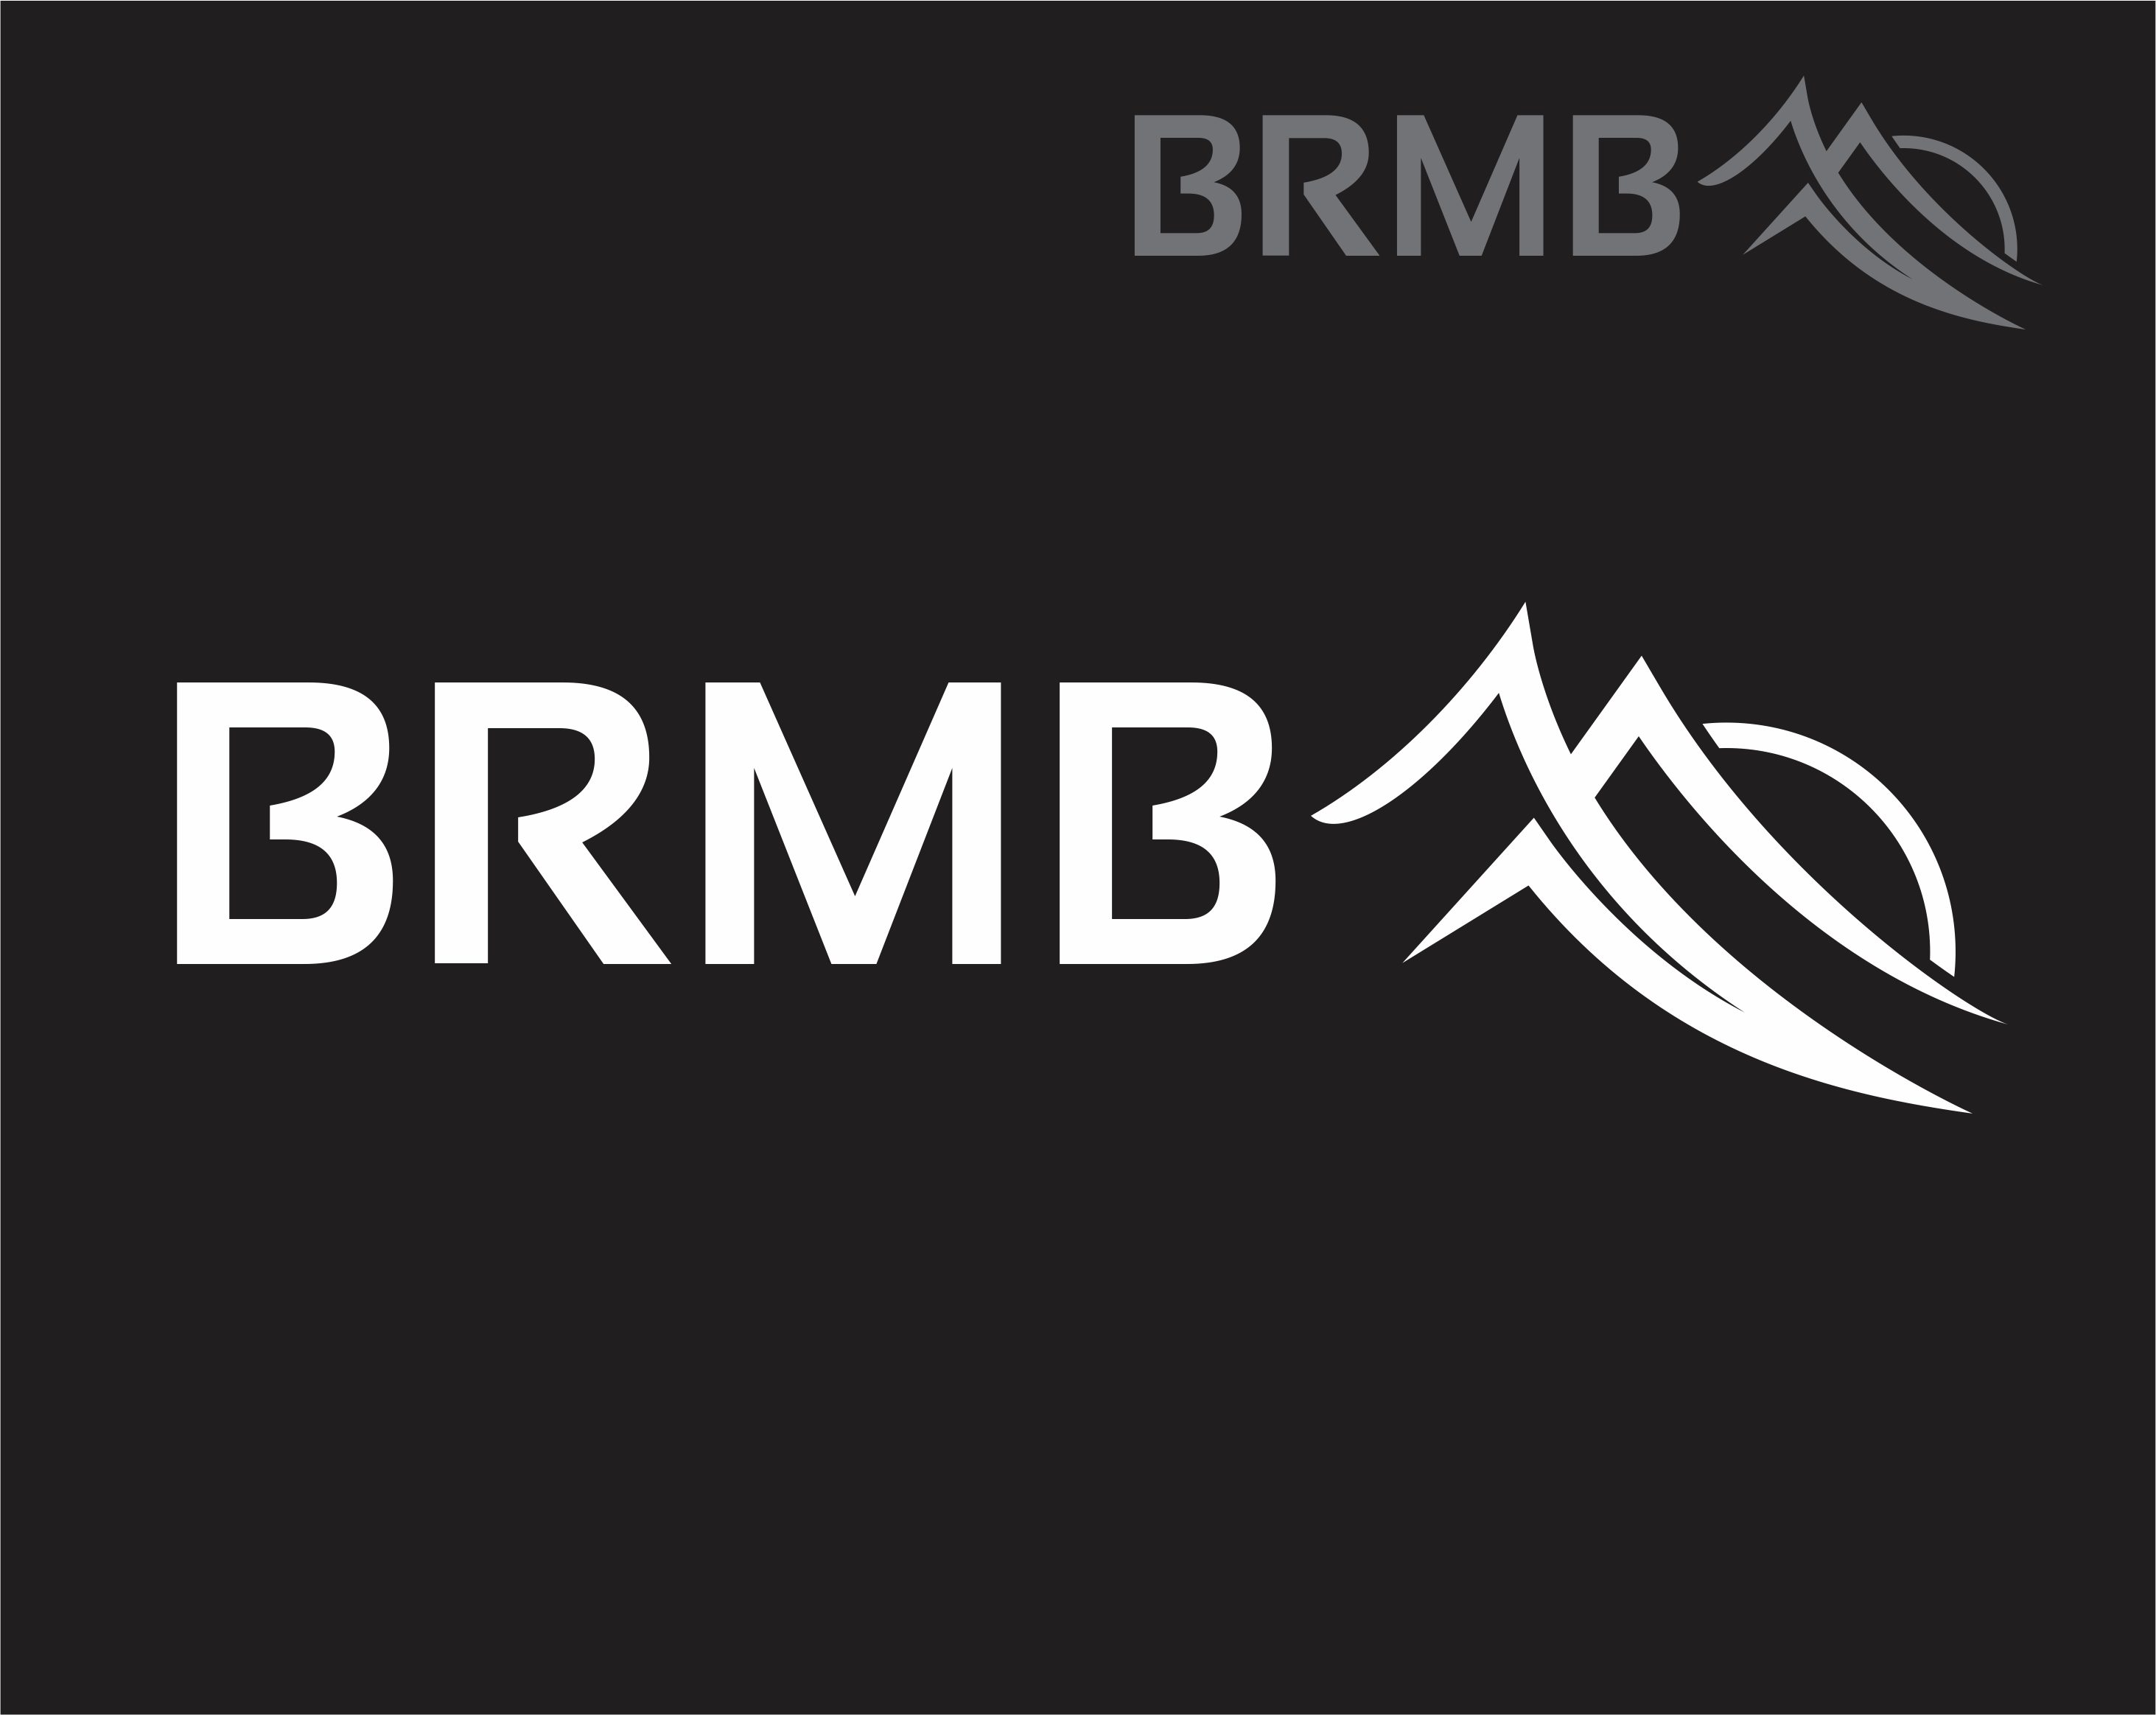 Logo Design by Armada Jamaluddin - Entry No. 158 in the Logo Design Contest Fun Logo Design for BRMB.